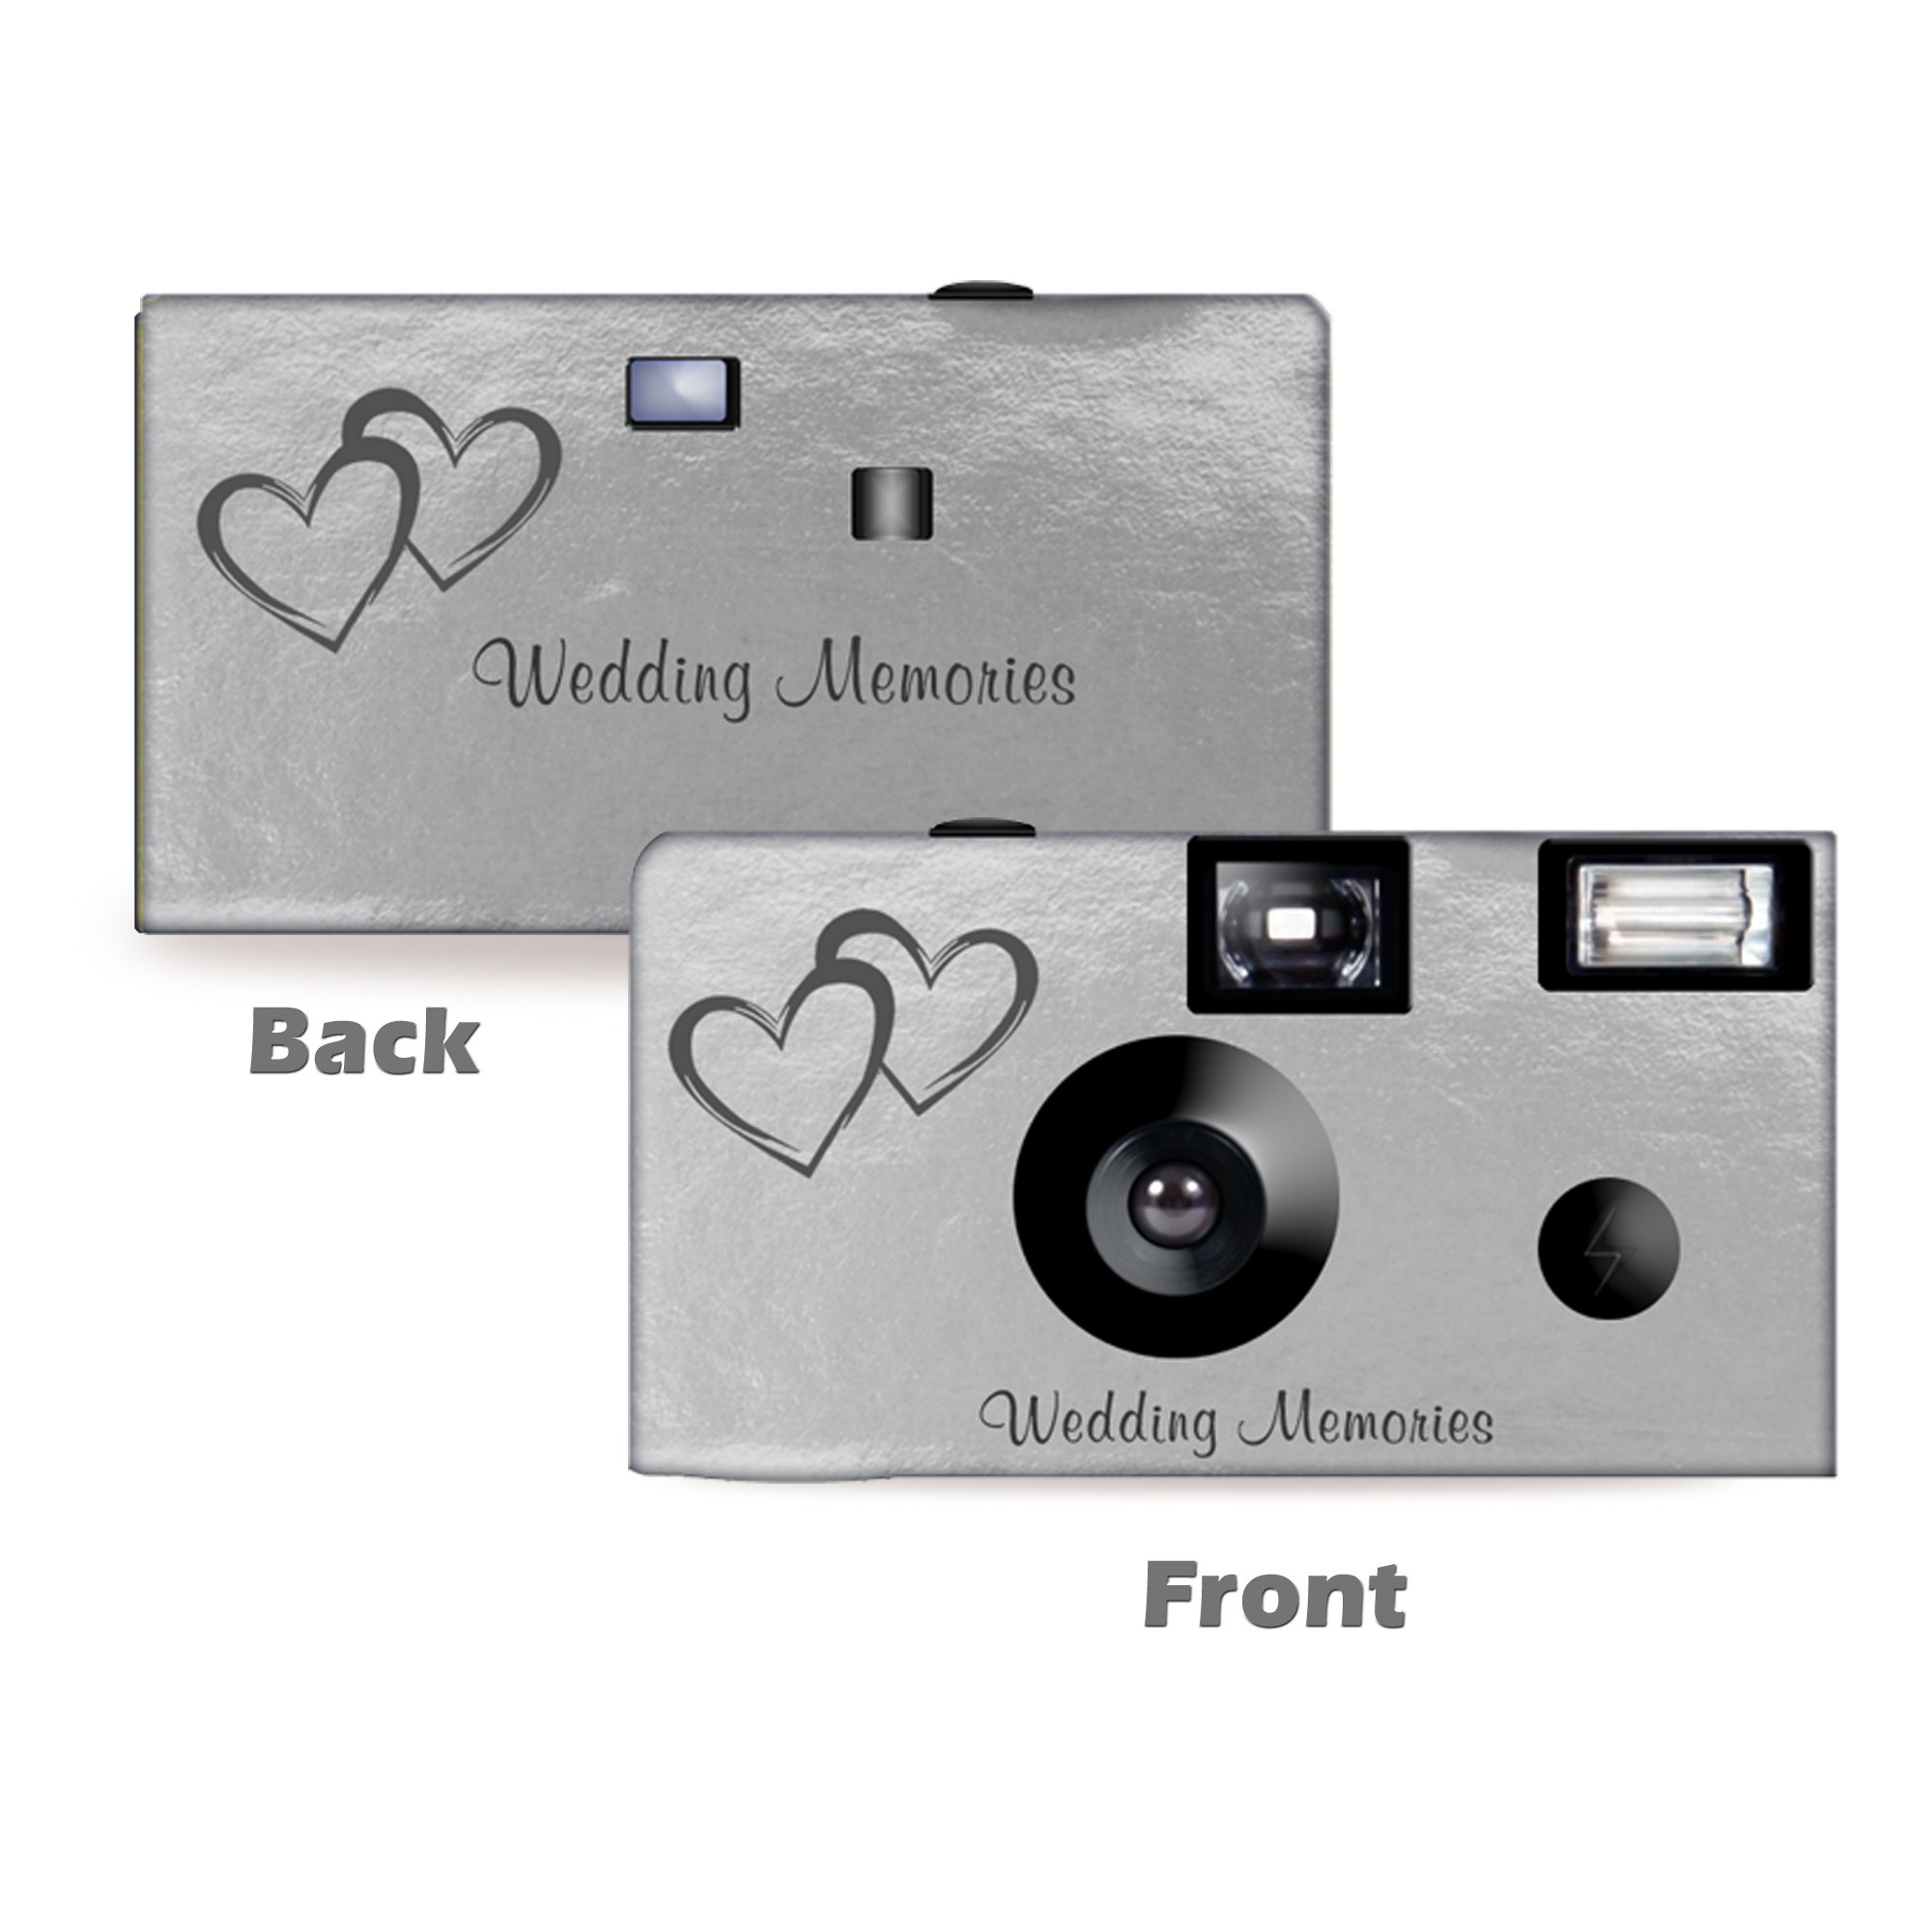 5pack-Silver Foil Coupled Hearts Wedding Disposable Camera, Free Shipping, Wedding Camera, Anniversary Camera, from CustomCameraCollection WM-50146-C